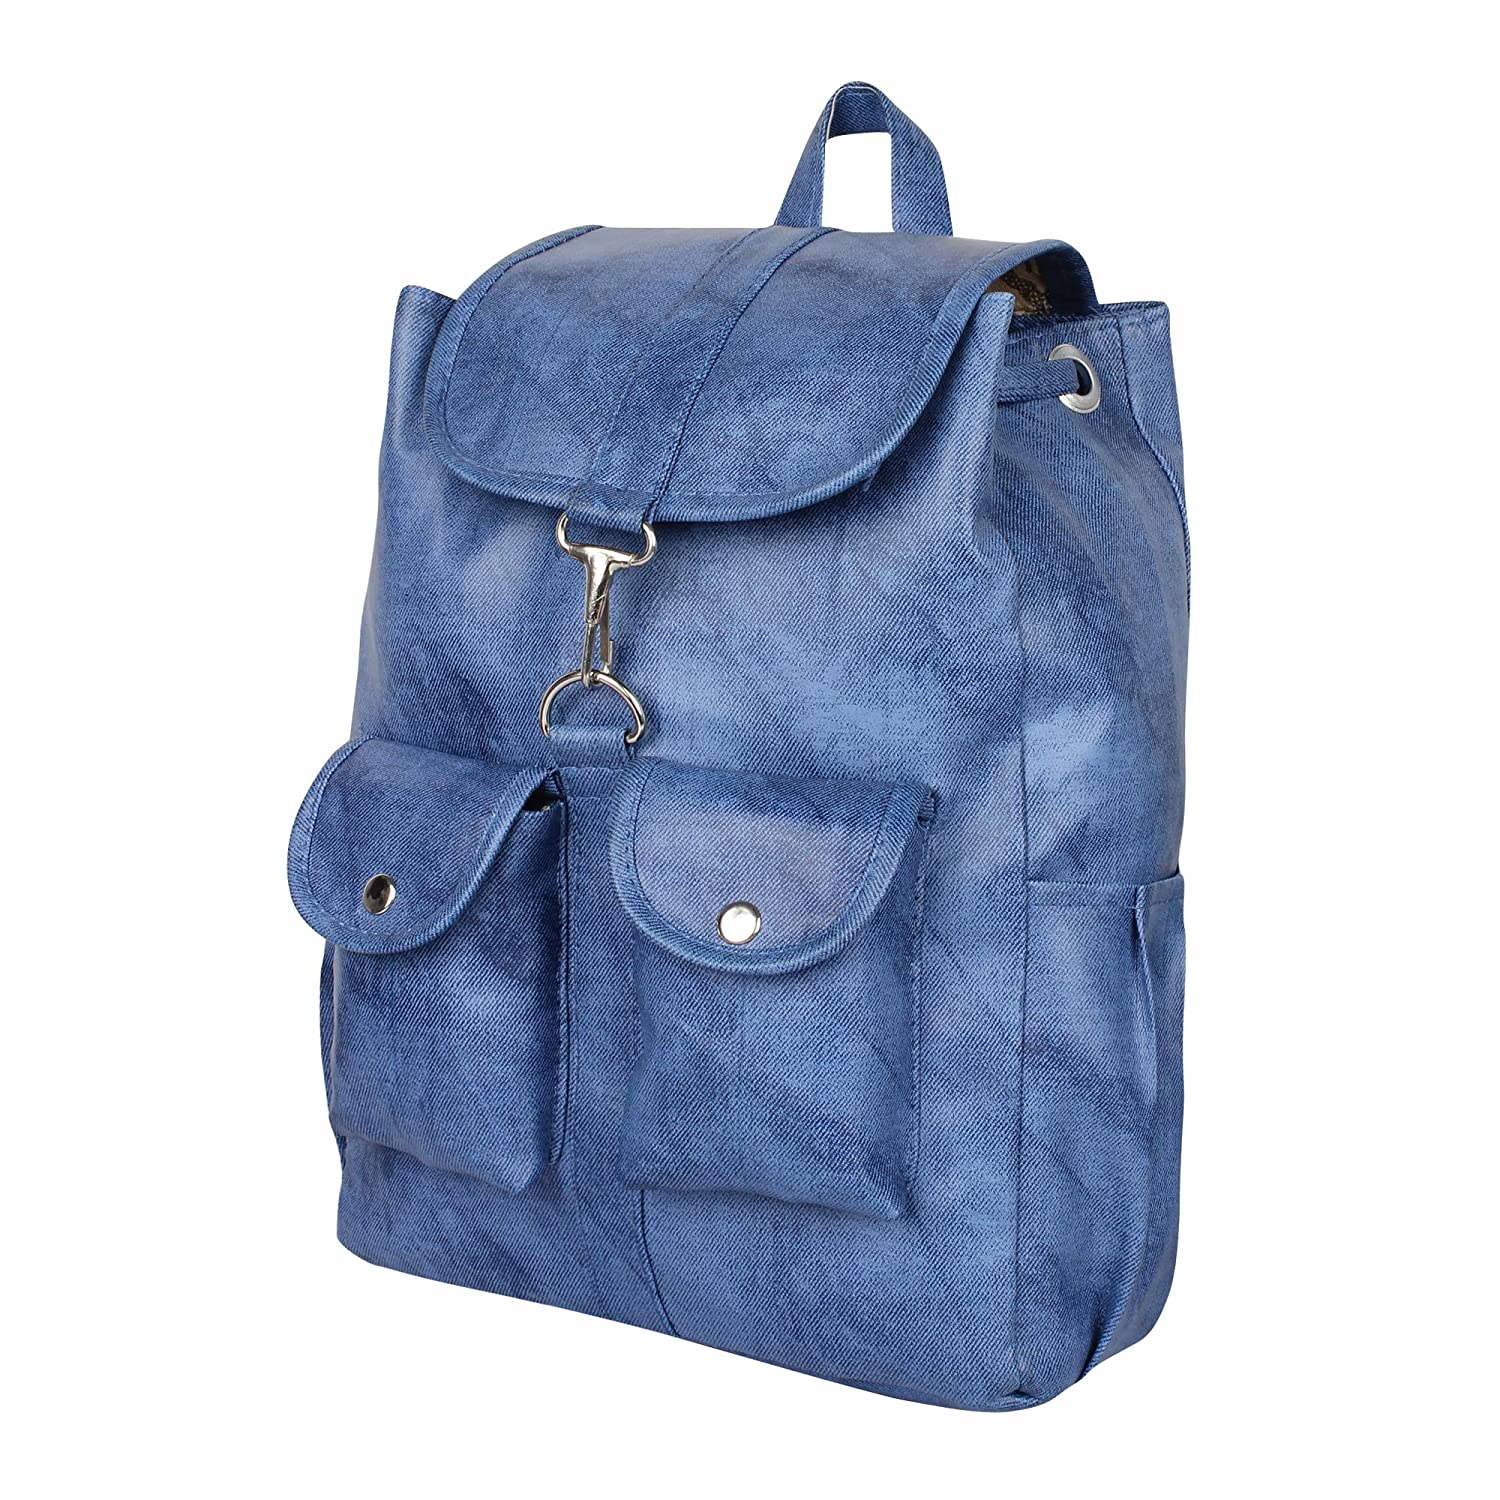 Rajni Fashion Stylish PU Leather Blue Backpack for Girls and Women s   Amazon.in  Shoes   Handbags d9817991e8